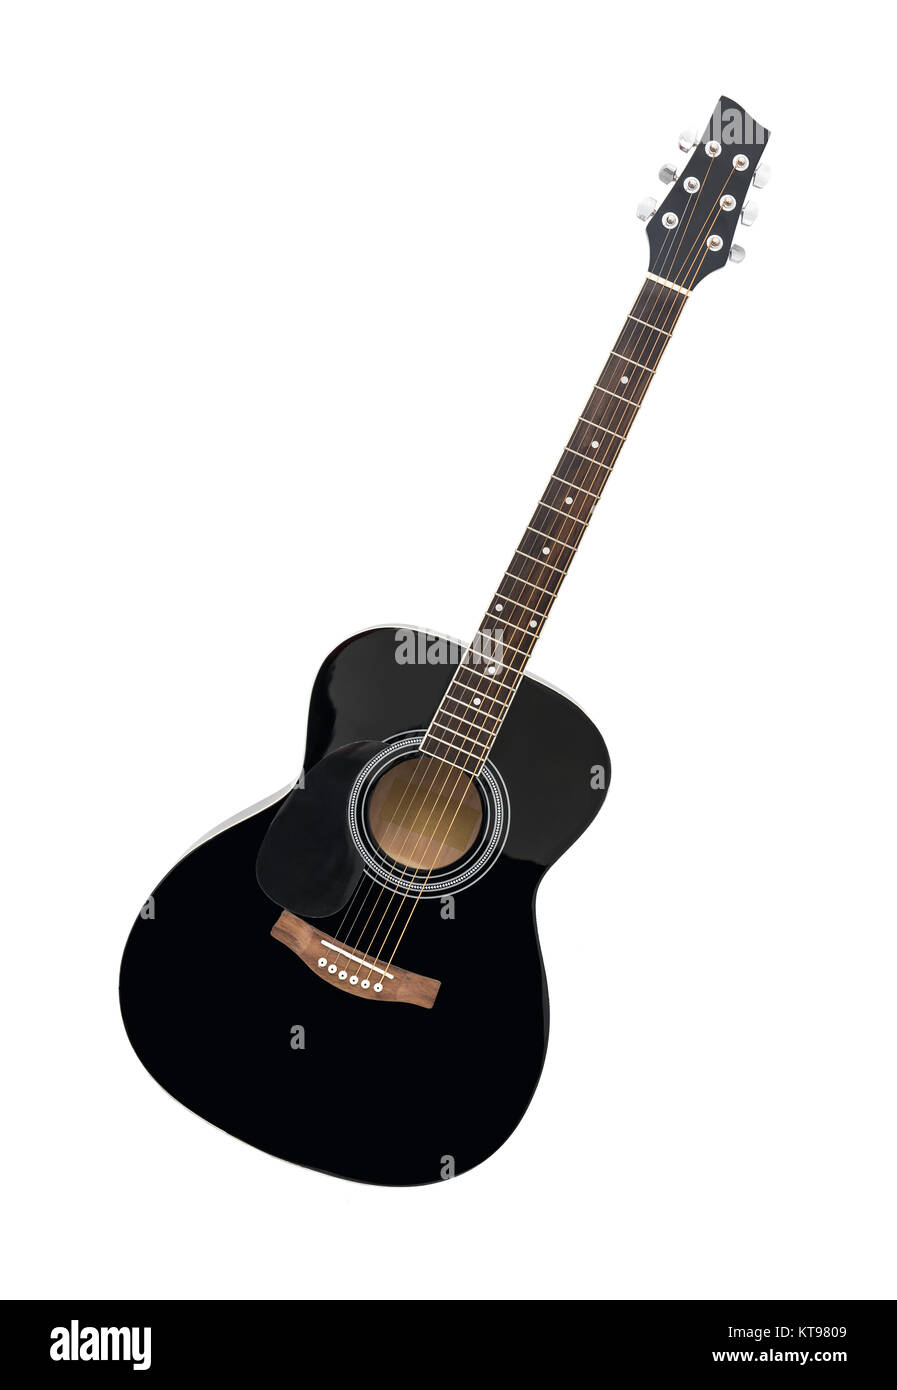 Black Classical Acoustic Guitar Isolated On A White Background Stock